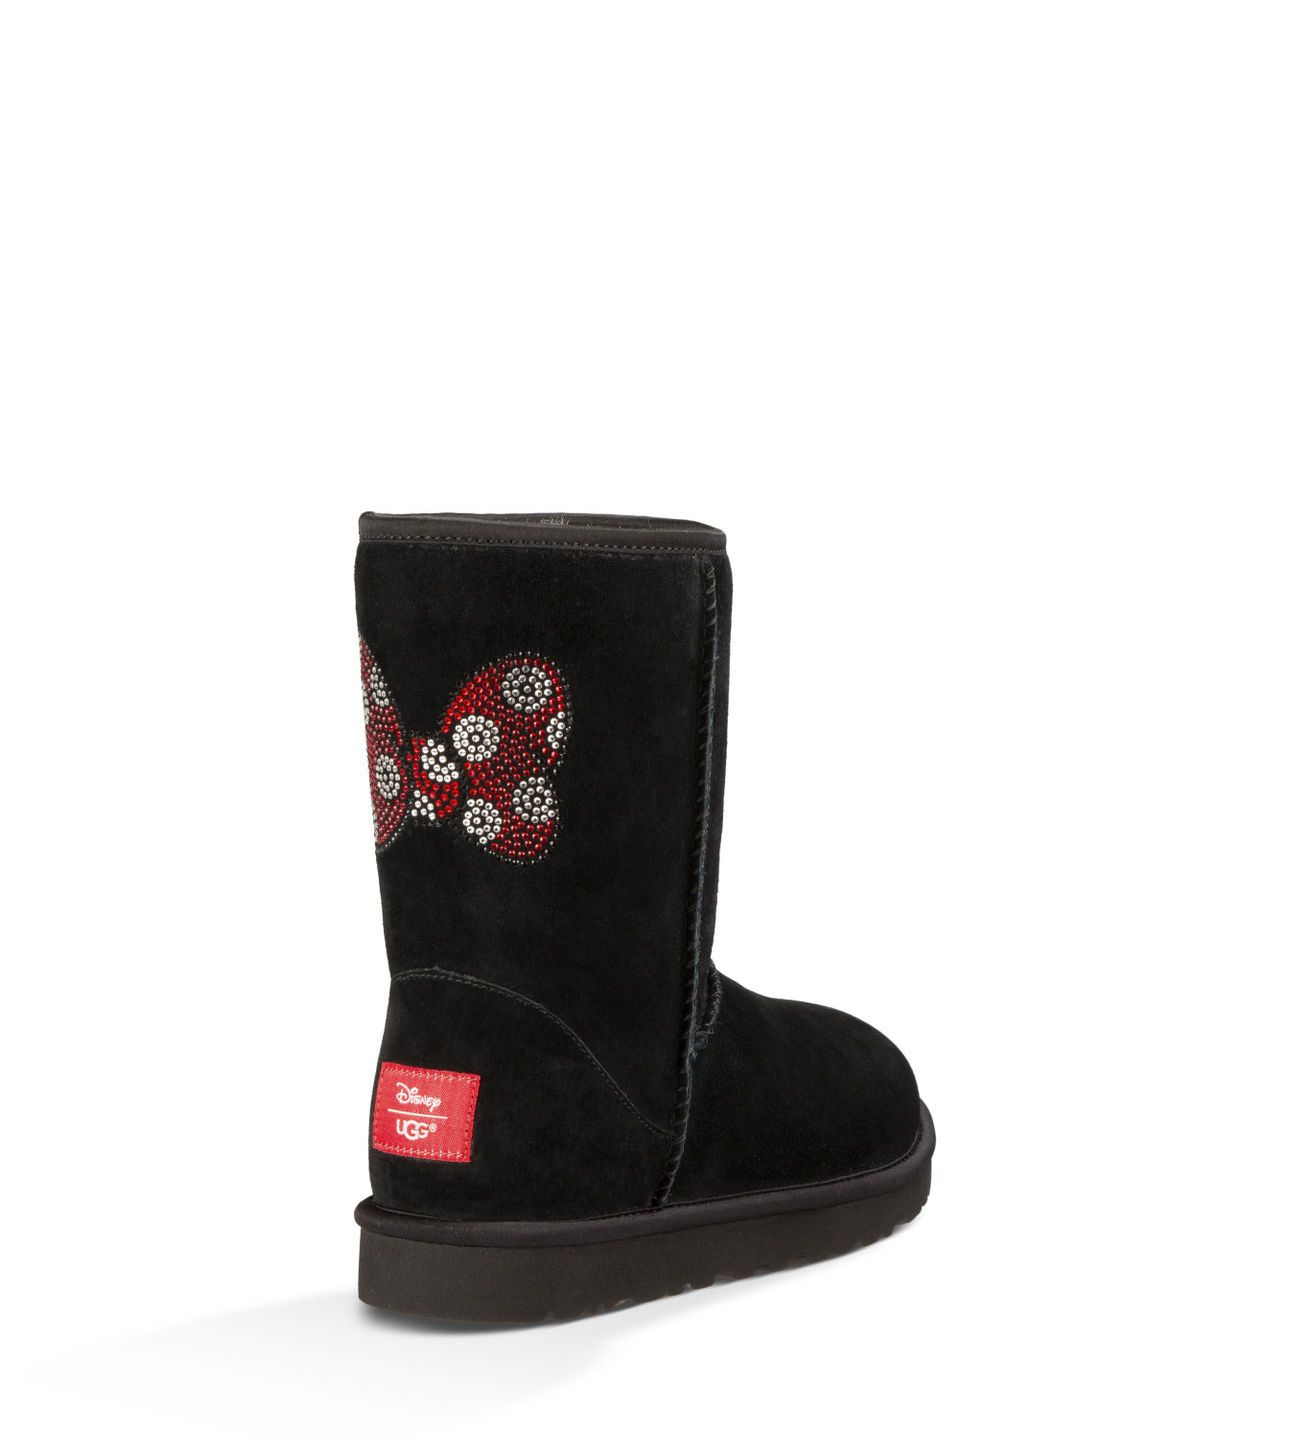 newest ugg styles